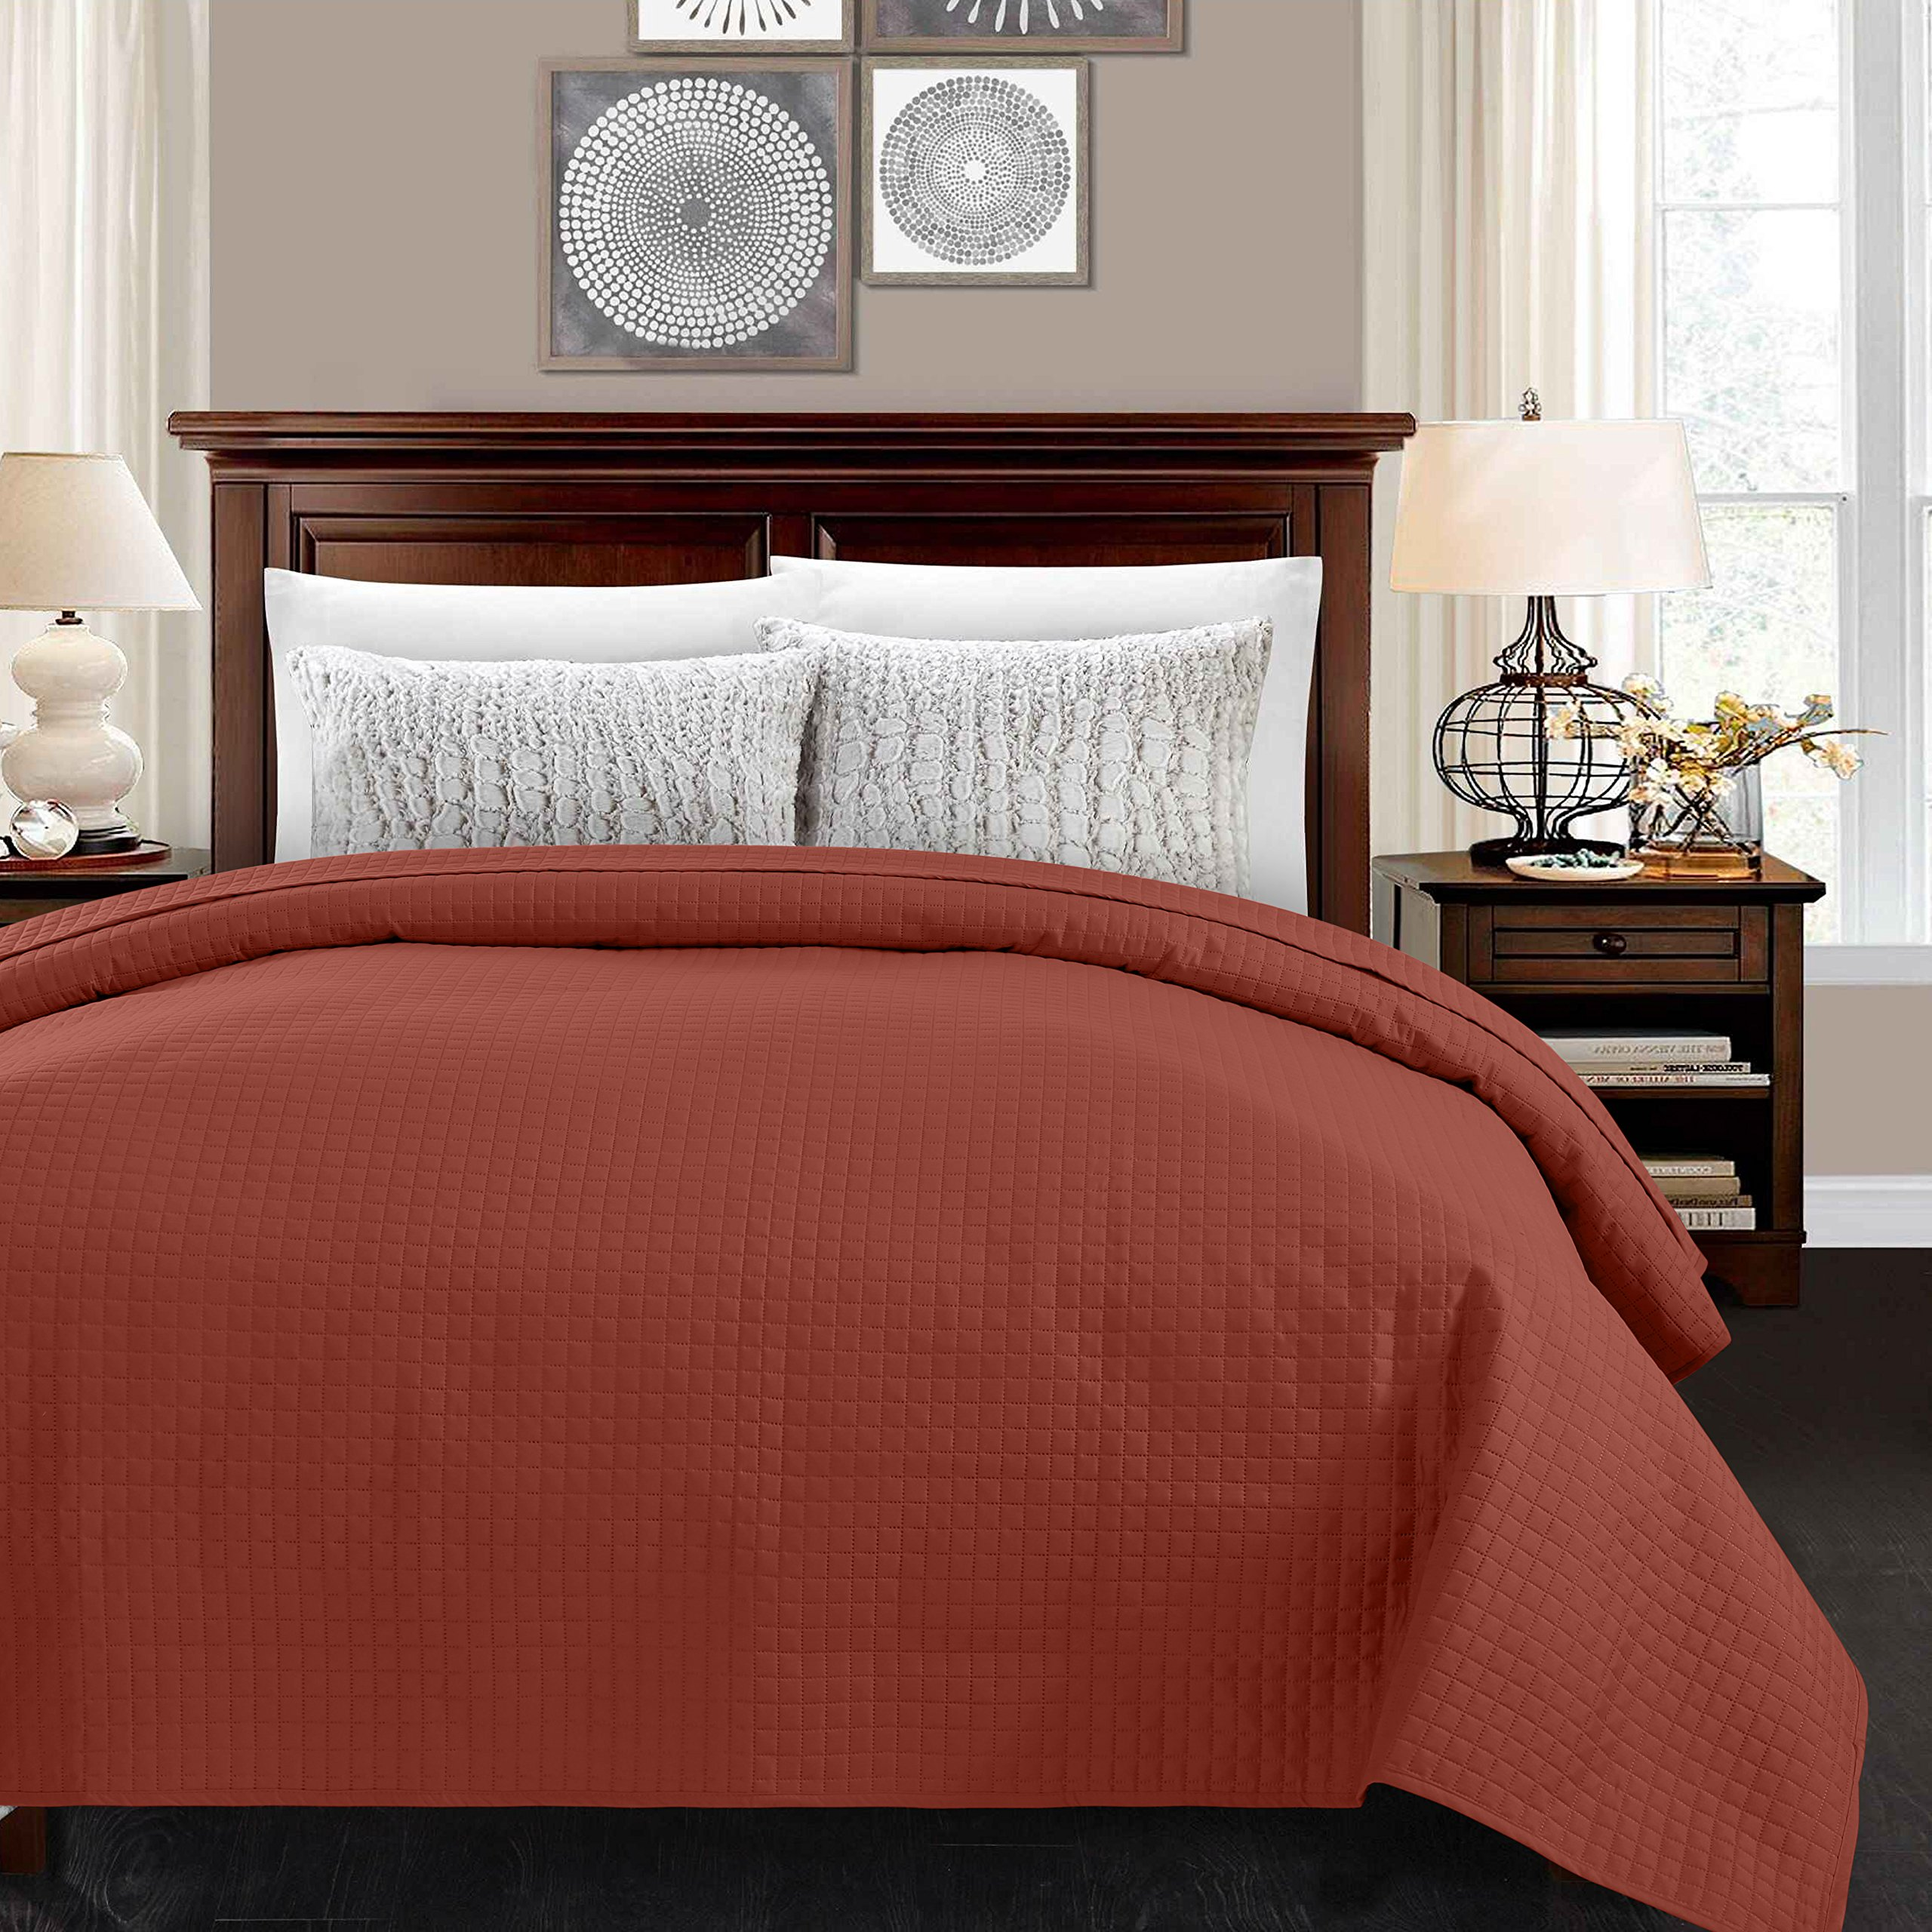 ALPHA HOME Quilted Bed Quilt Bedspread Coverlet Bed Cover Light Weight Luxury Checkered Pattern - Chocolate, Queen